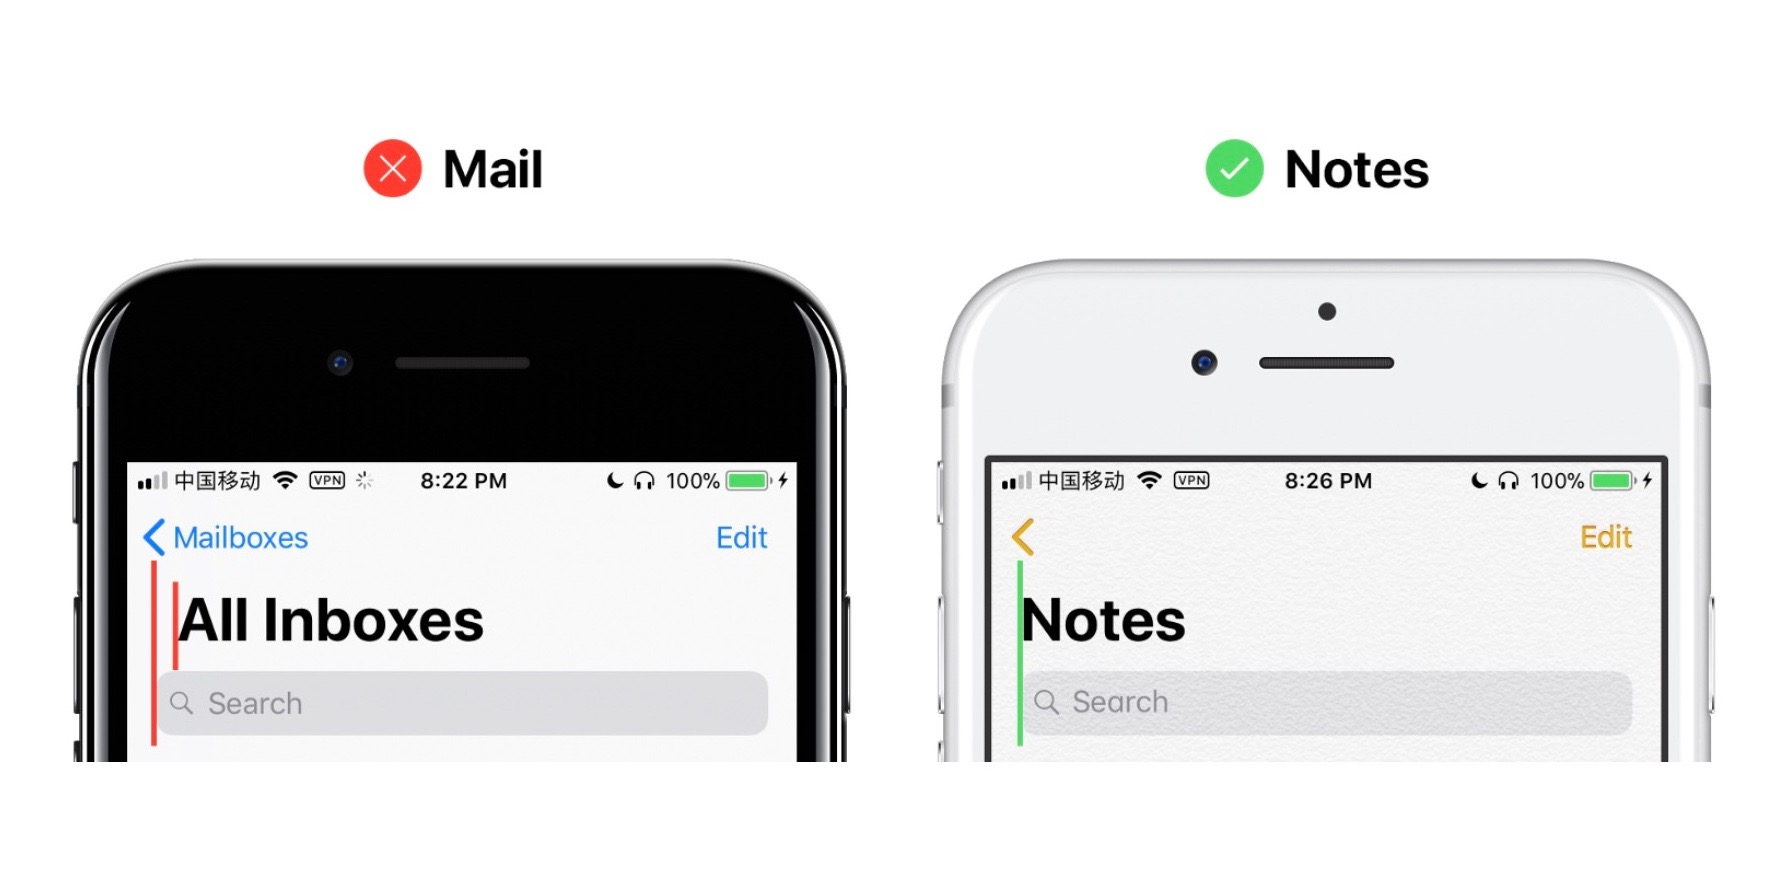 iOS 11 fails the detail test, says designer, as he points to inconsistencies